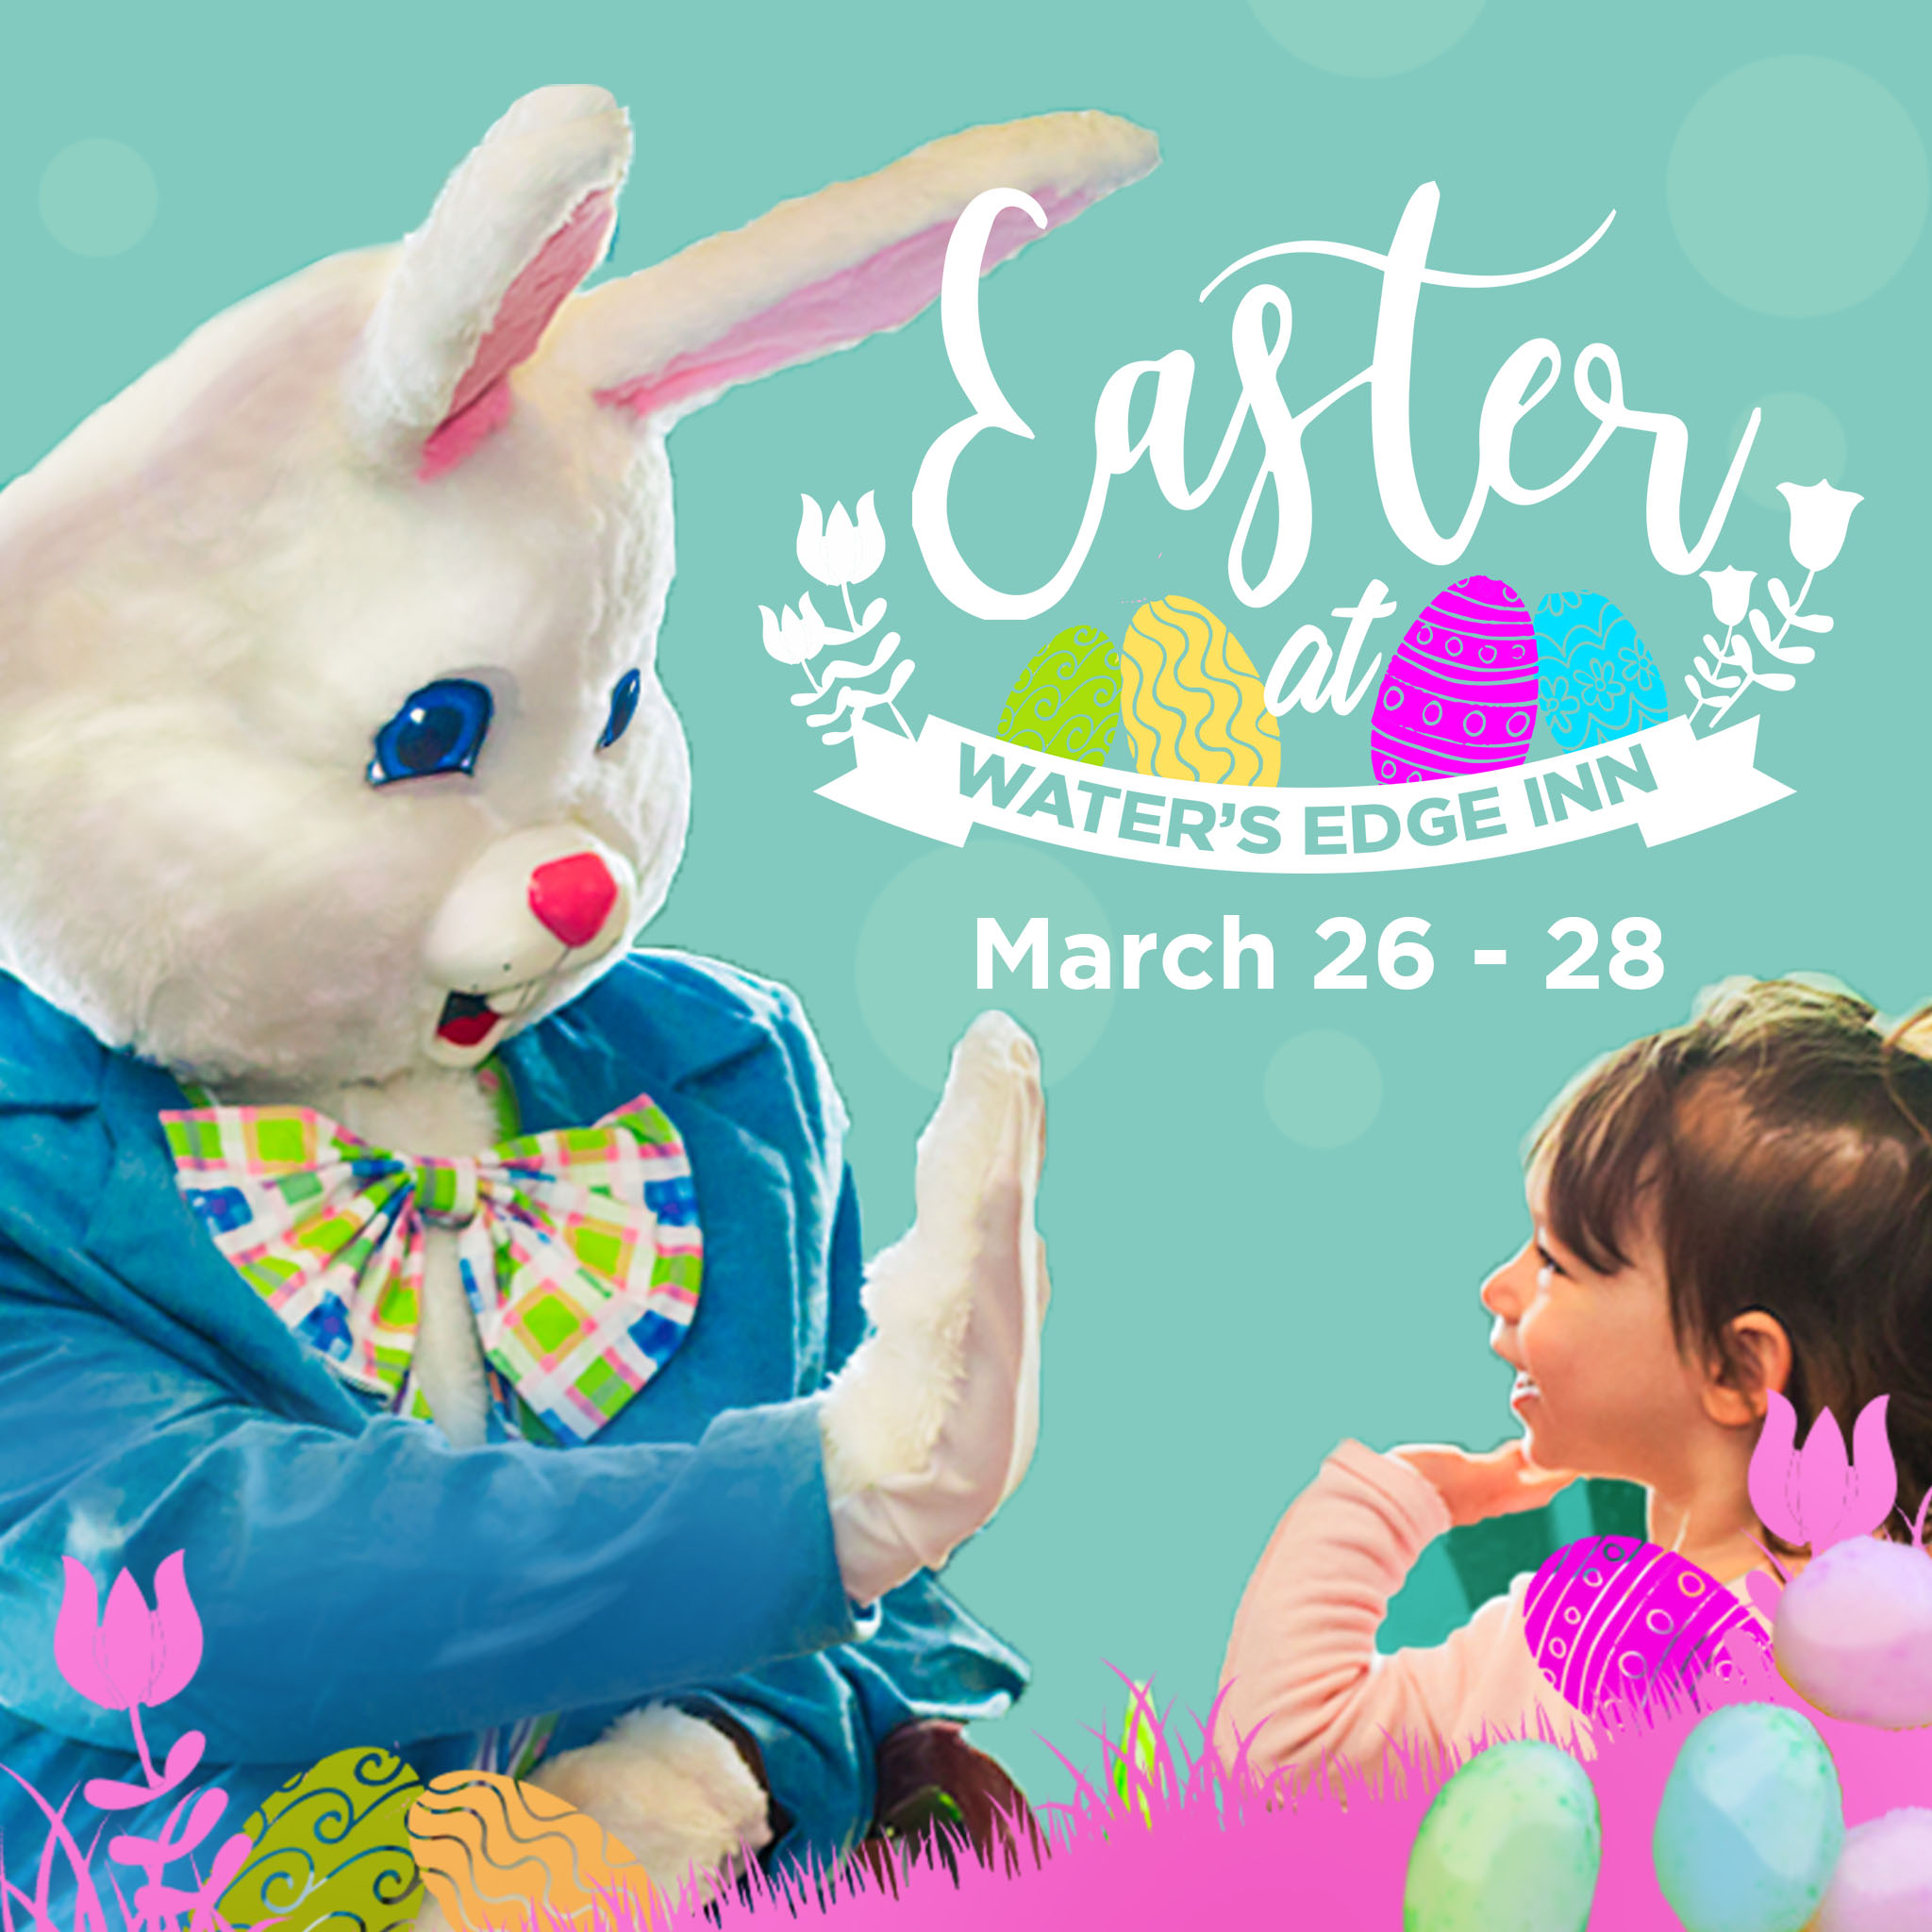 Easter at Water's Edge Inn